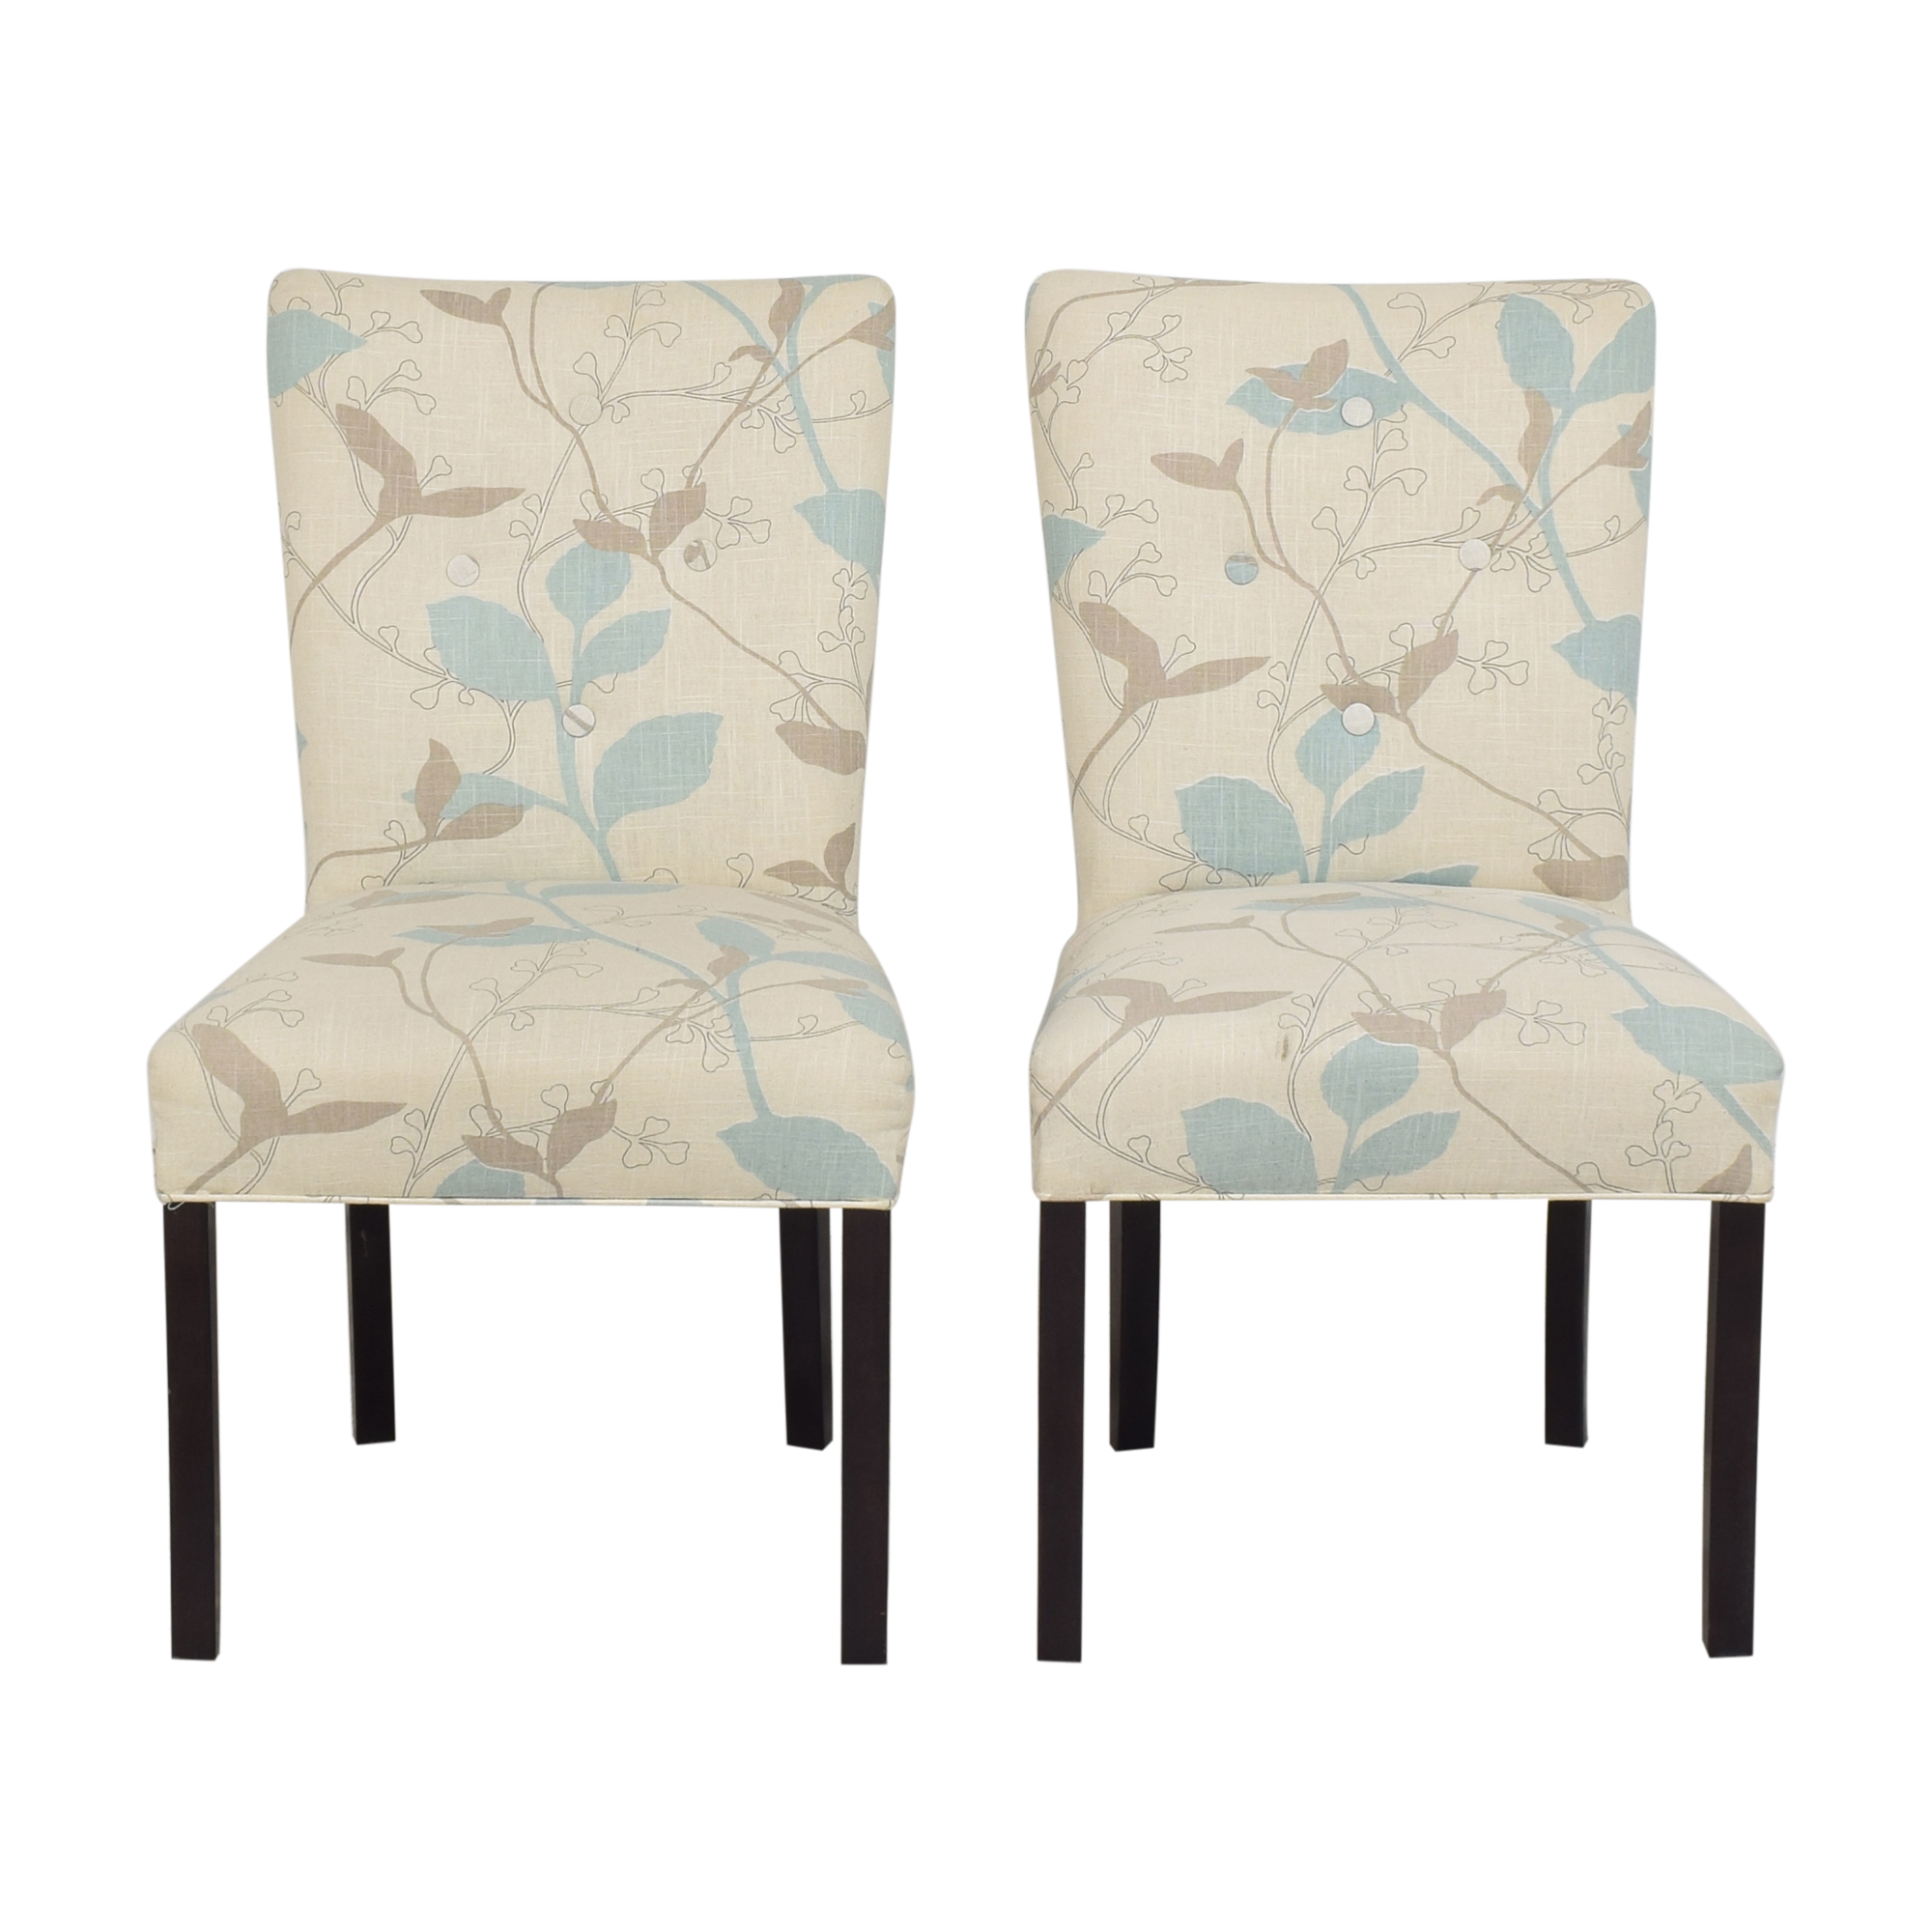 Wayfair Sole Designs Upholstered Dining Chairs / Chairs